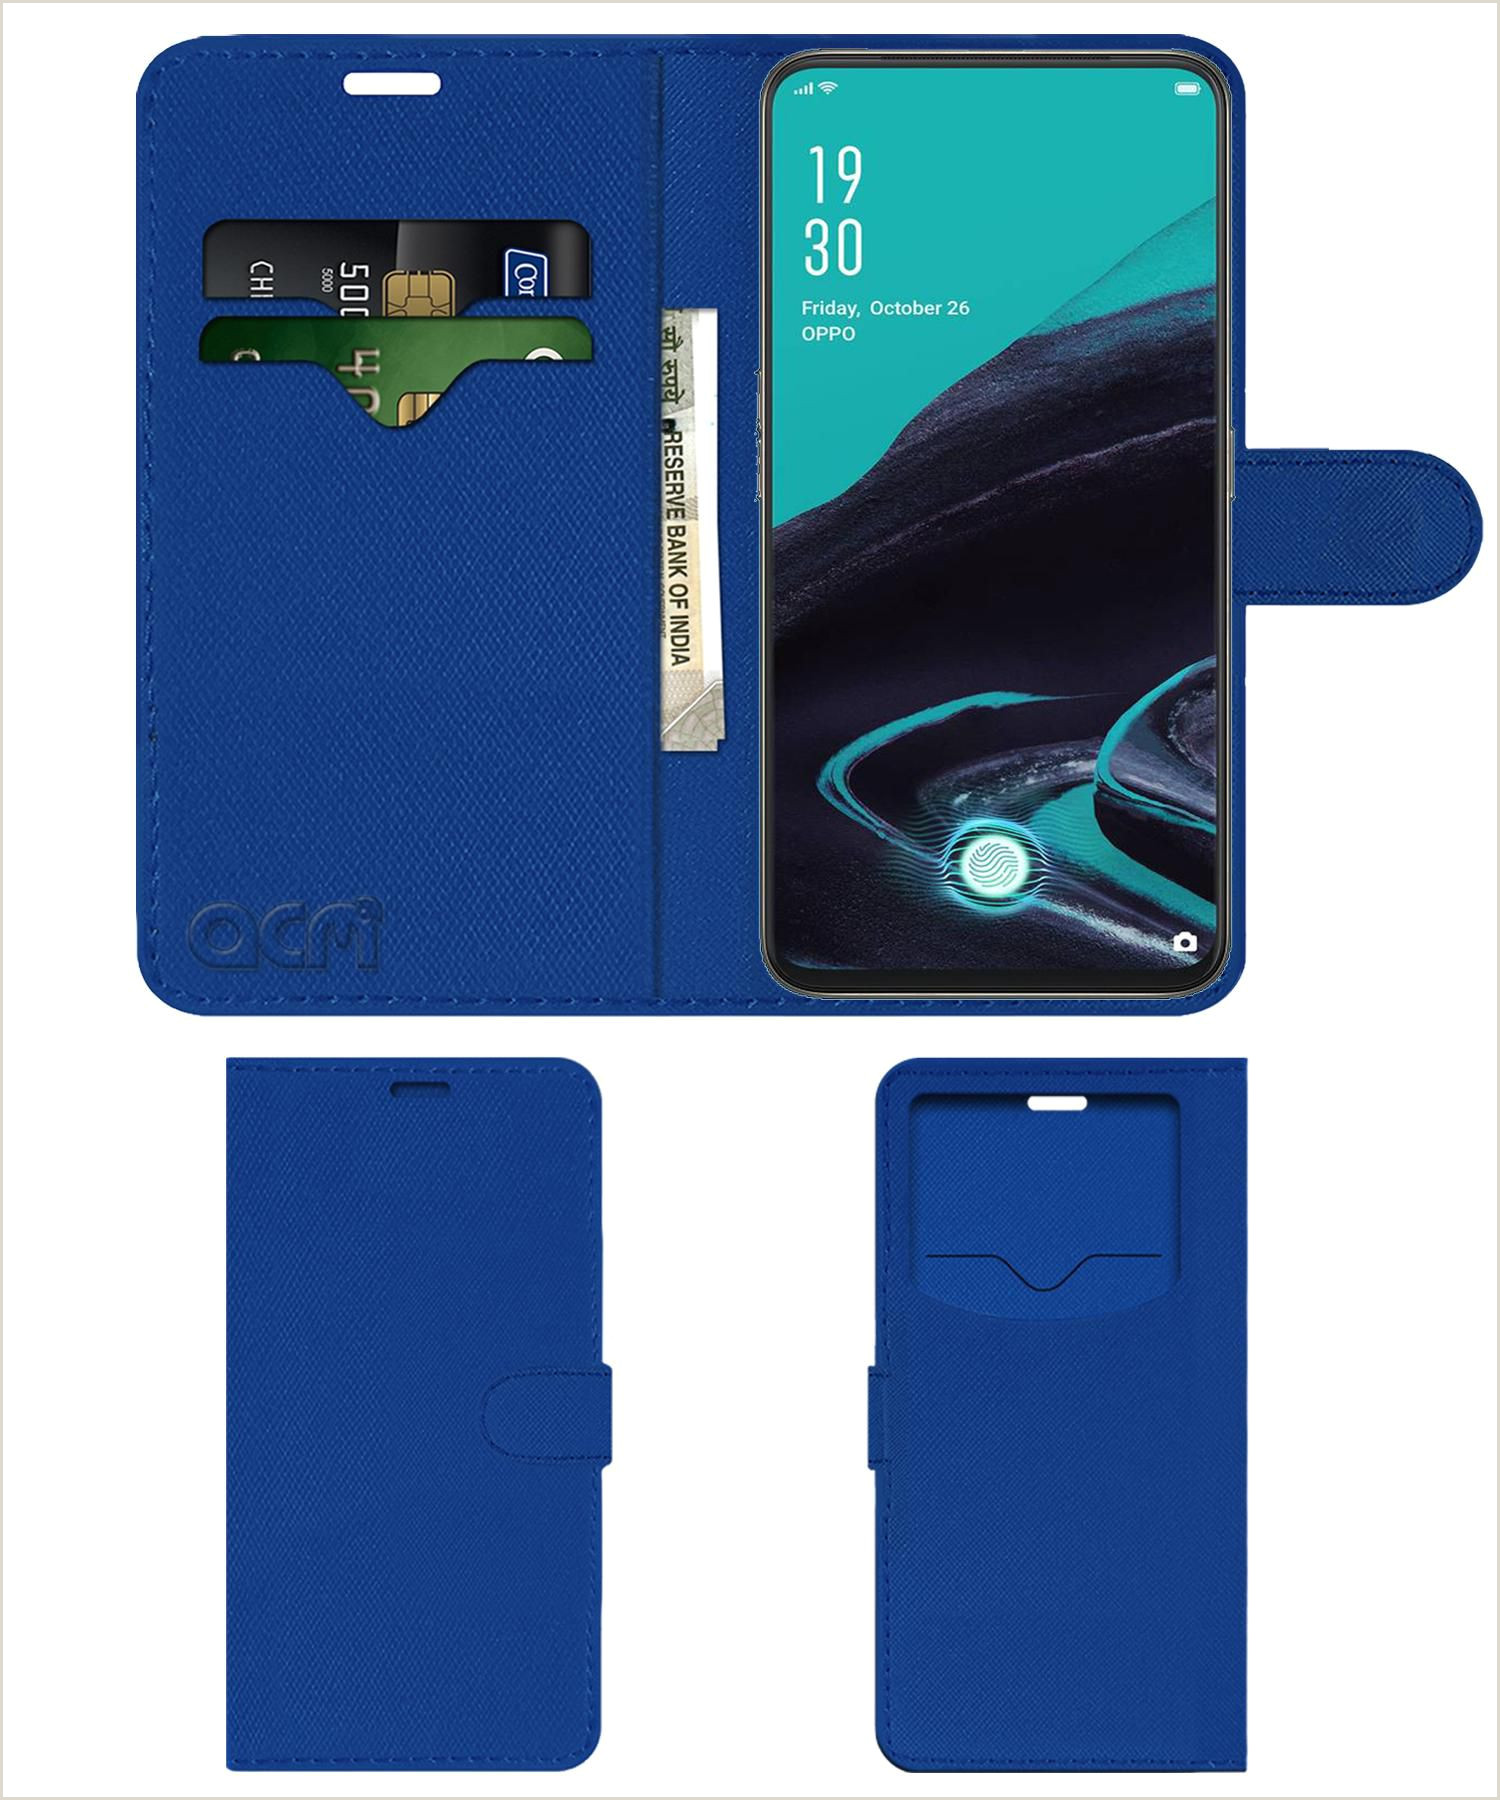 Business Card Back Side Oppo Reno 2 Flip Cover By Acm Blue Wallet Case Can Store 2